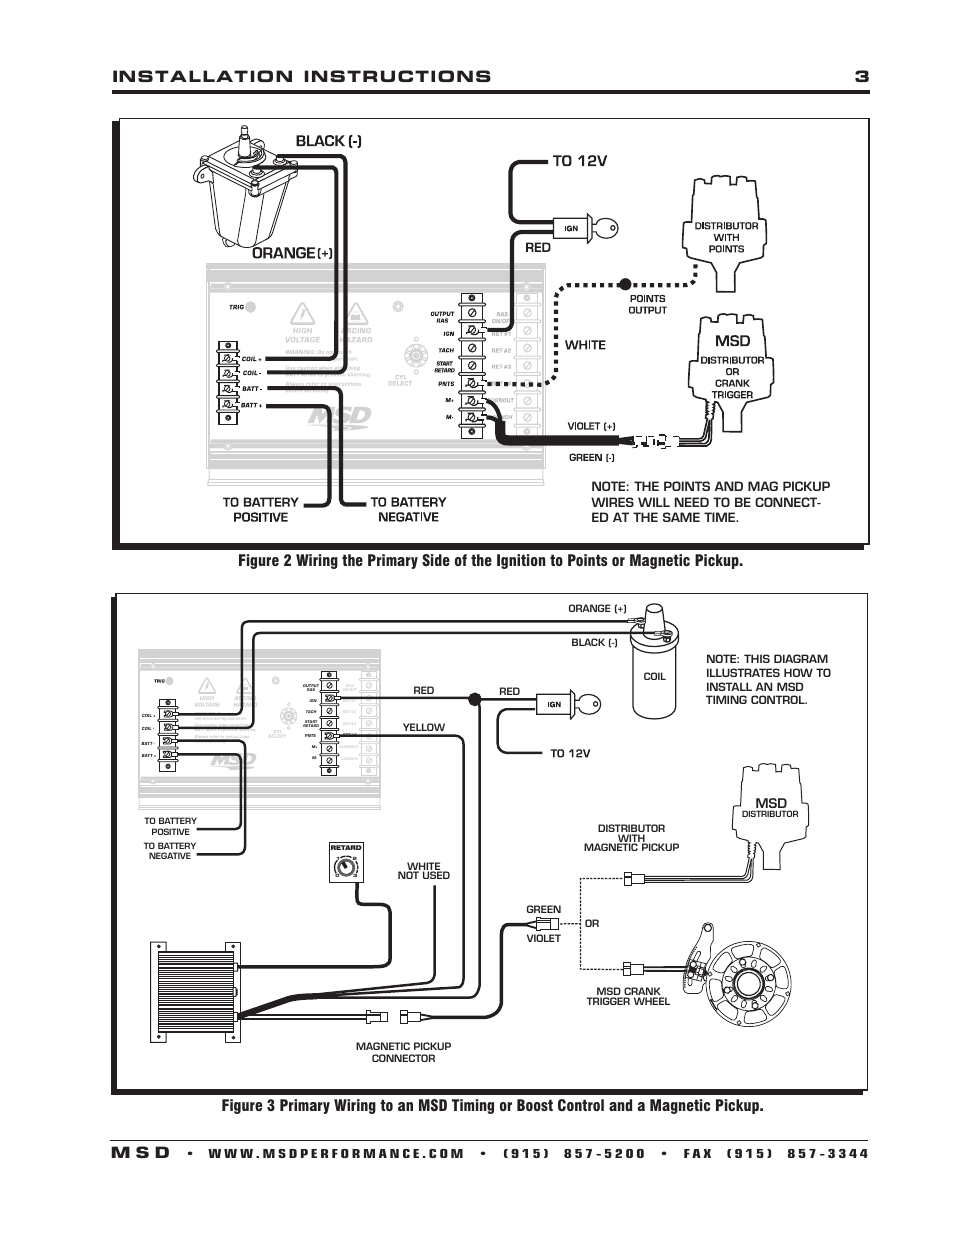 Installation    instructions 3 m s d   MSD 7330 7AL3 Ignition Control    Installation    User Manual